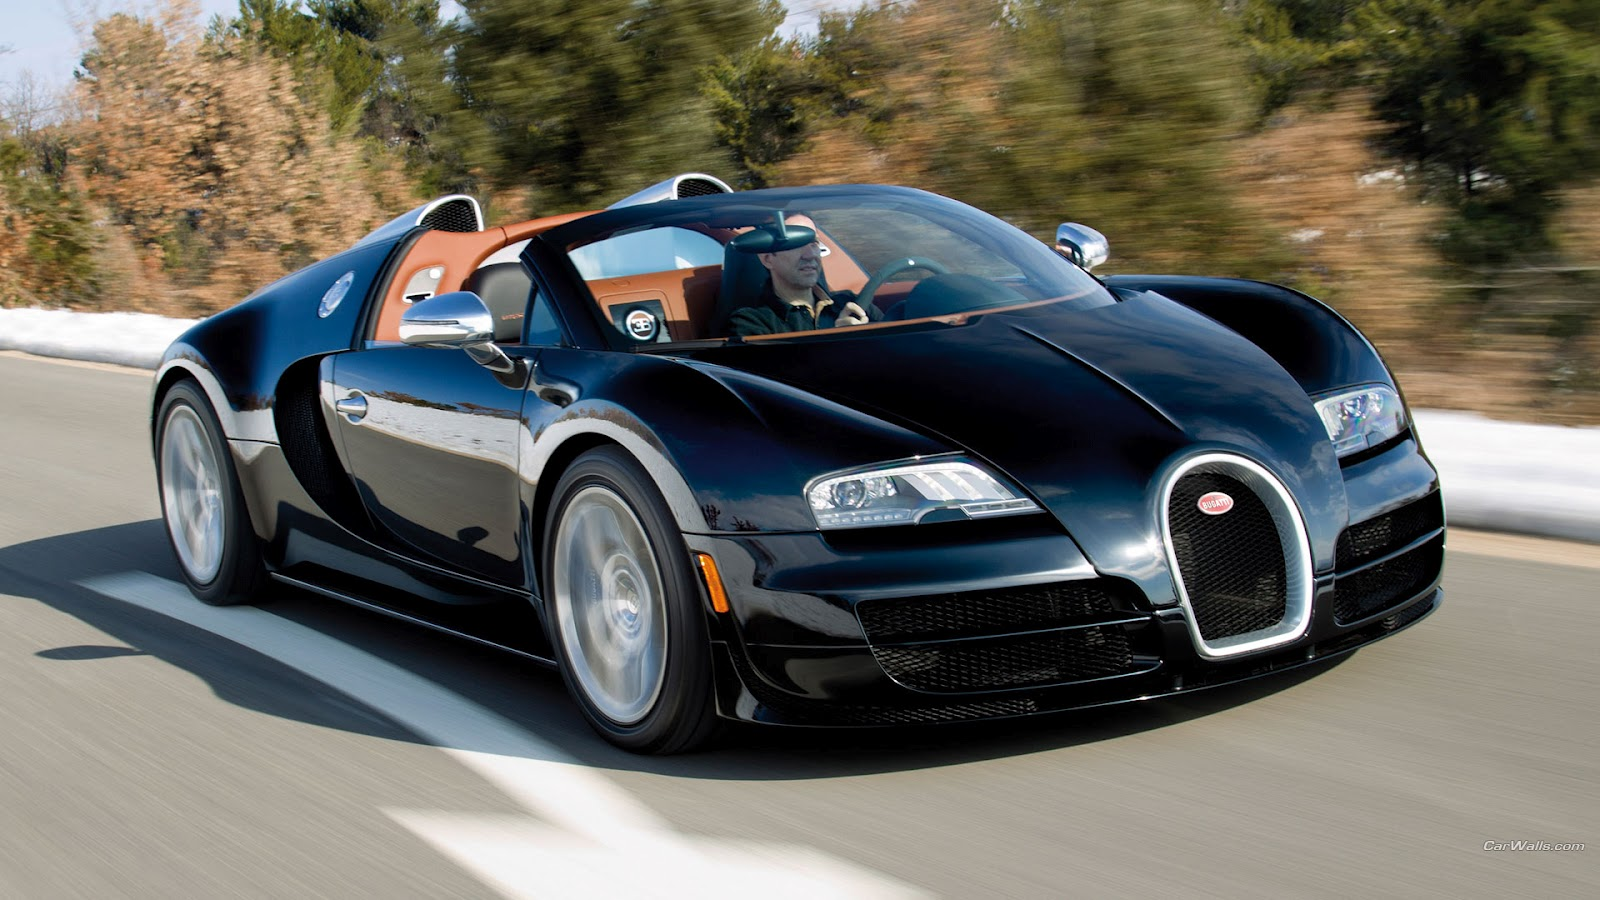 The Man Cave: Bugatti Veyron 16.4 Super Sport